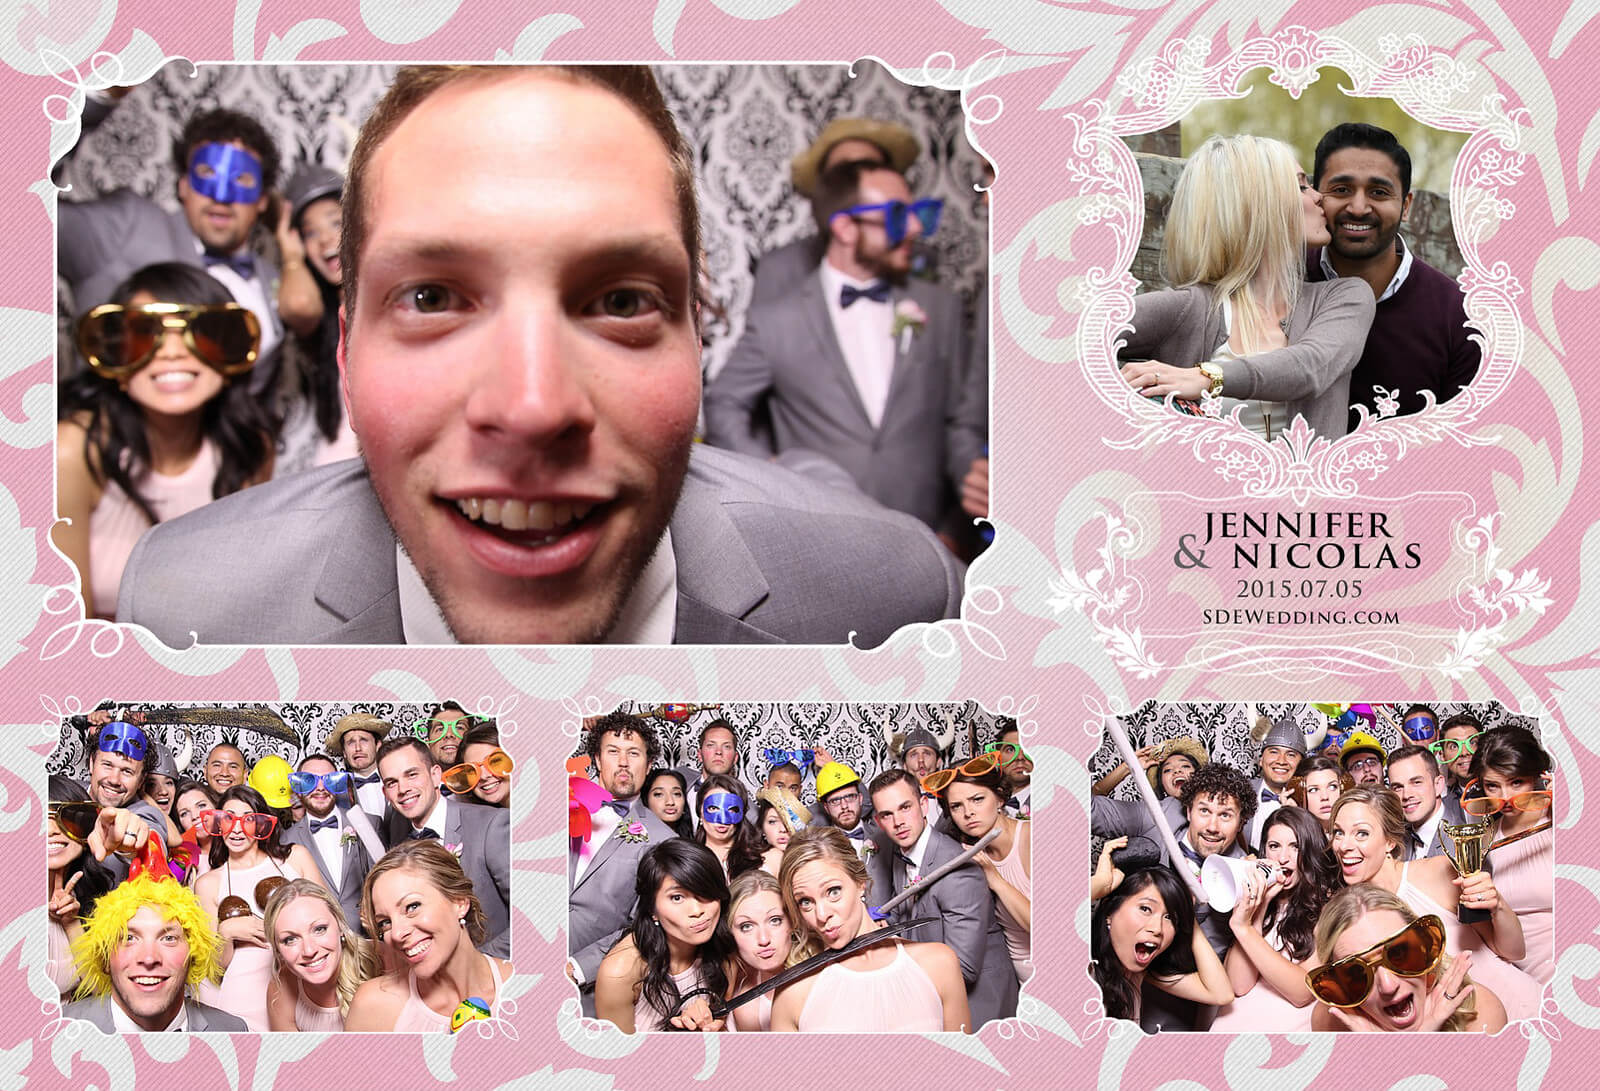 Toronto Liberty Grand Wedding Reception Photo Booth Rental 2